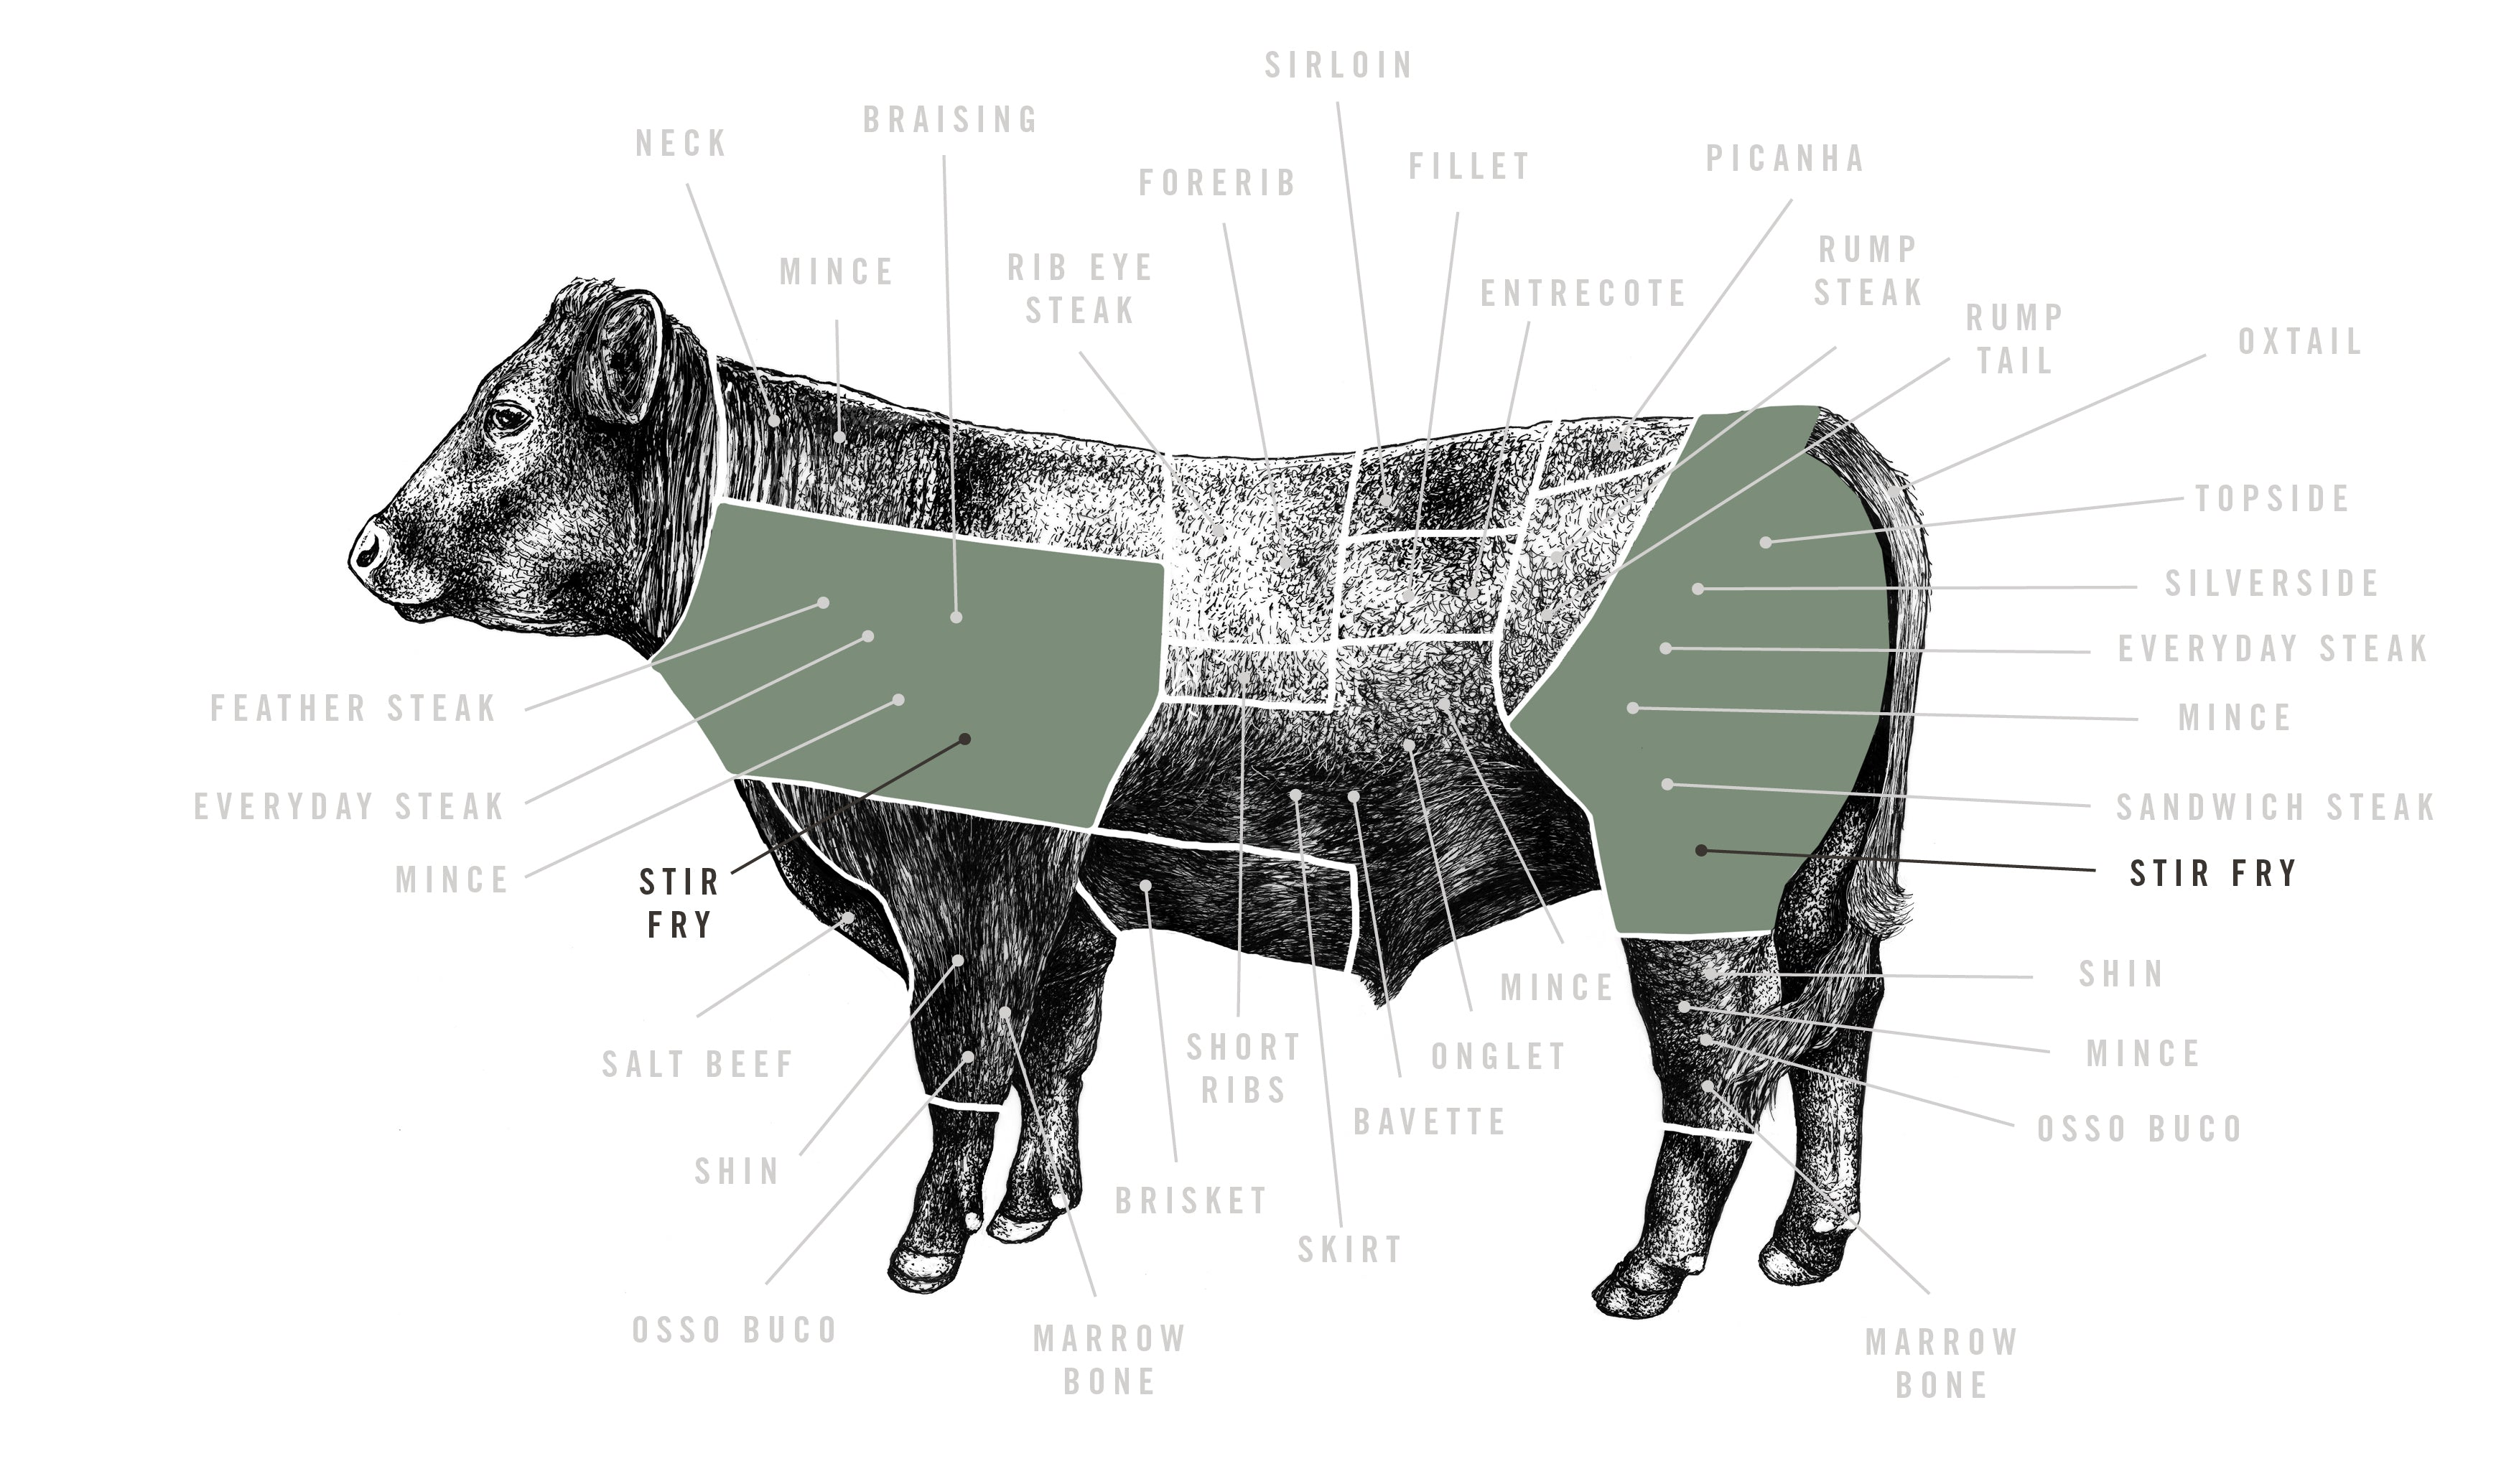 Grass Fed Aromatic Beef Stir Fry meat cuts diagram